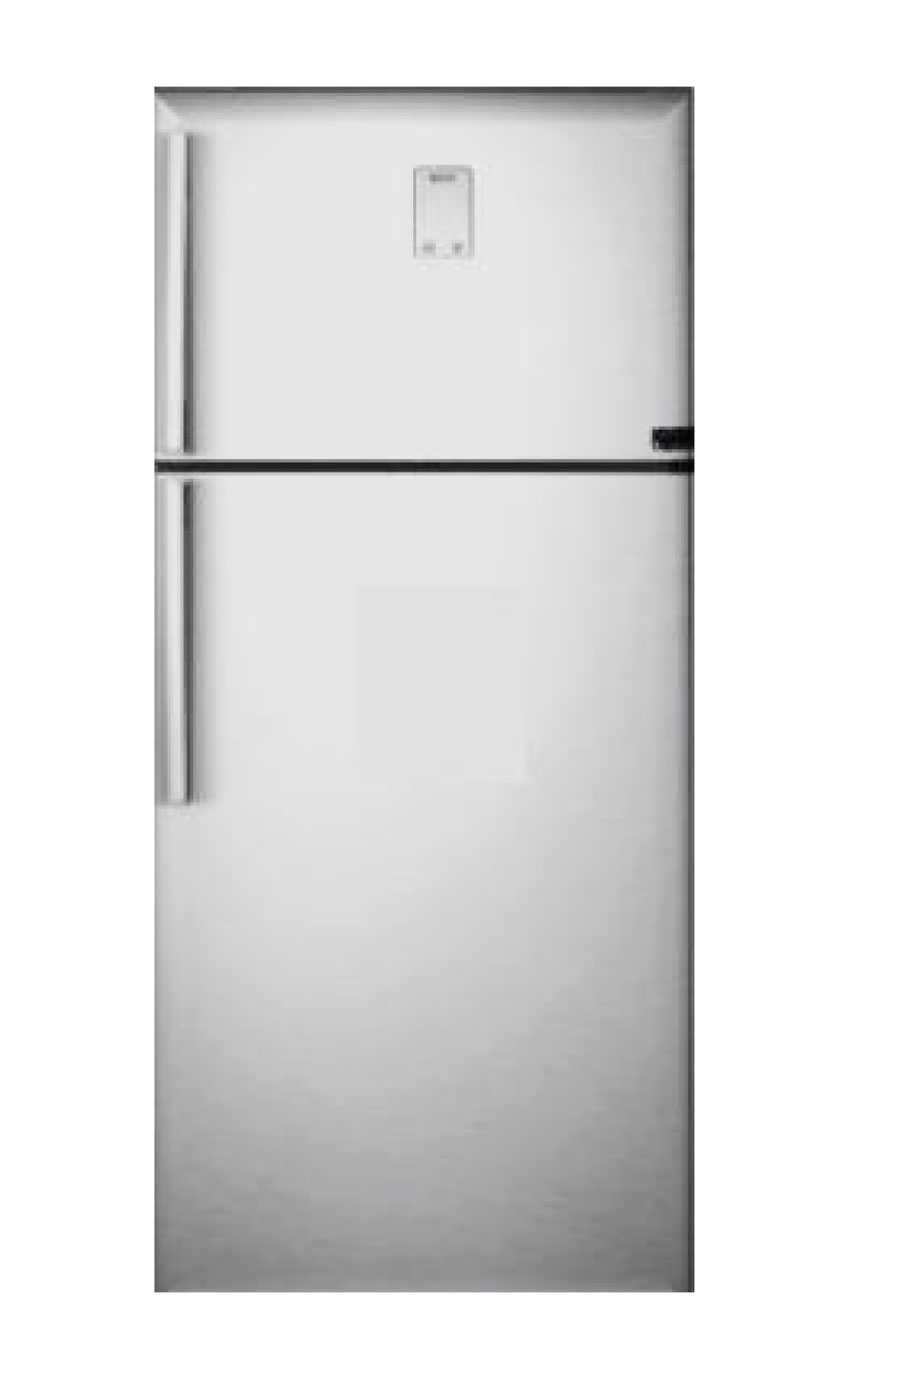 SAMSUNG FRIDGE RT56K6341SL call 0711477775 or 0711114001